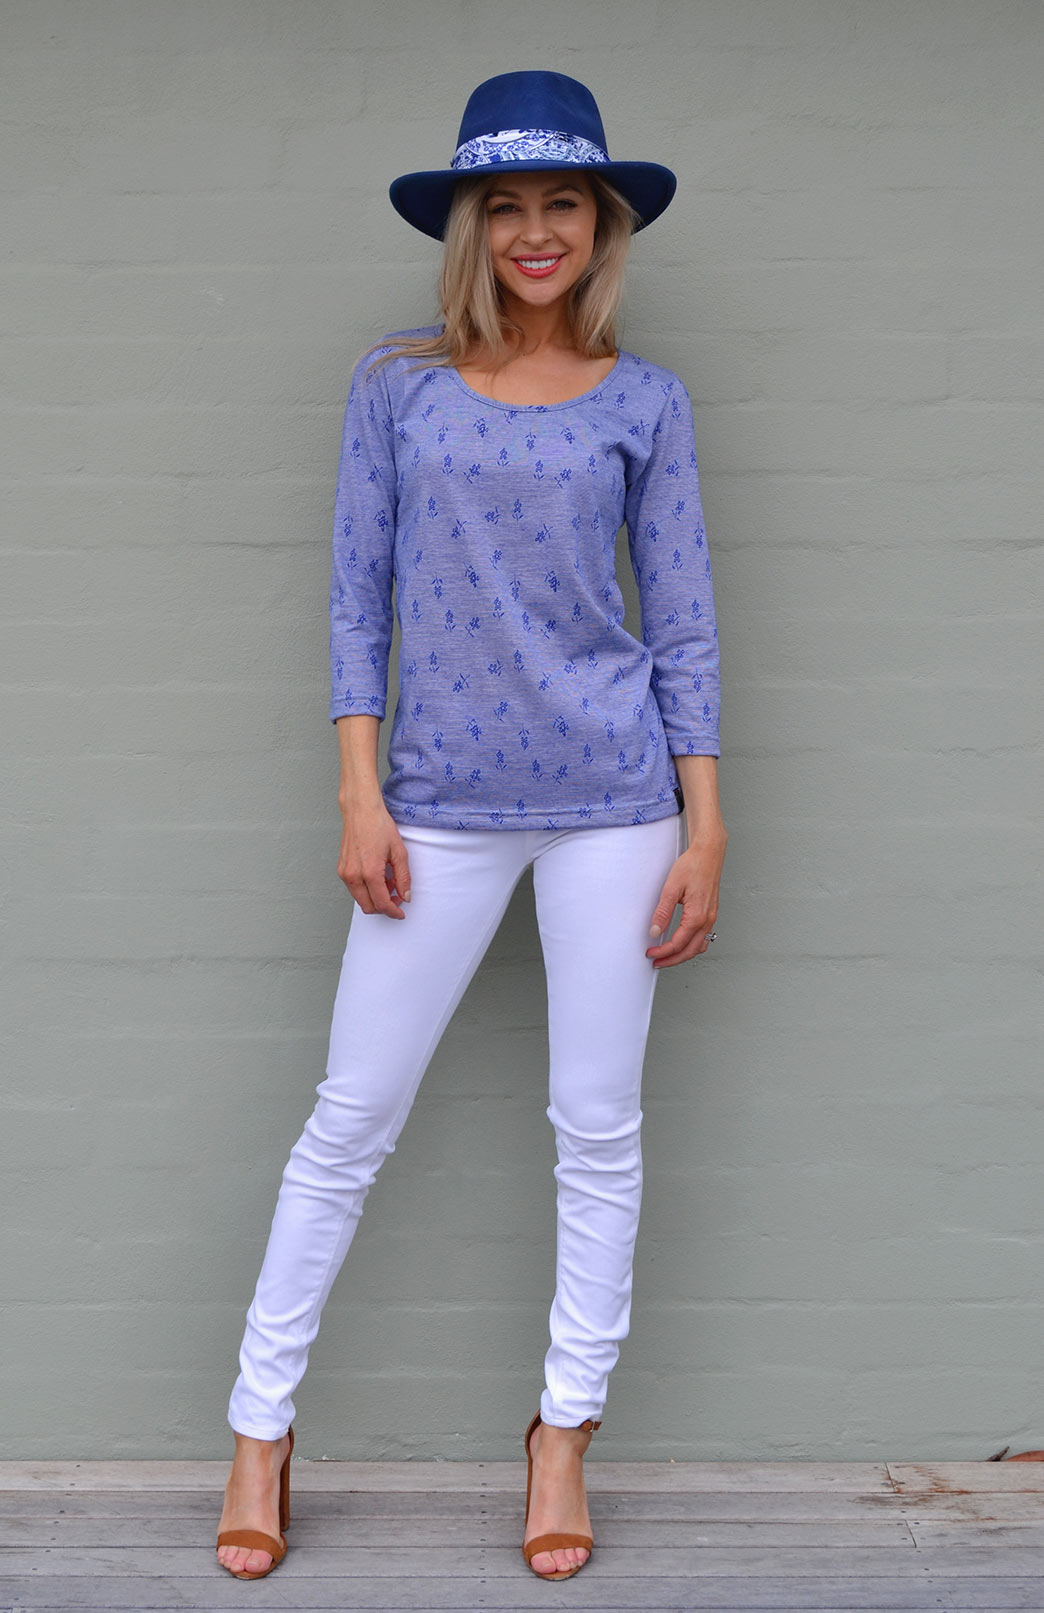 Sienna Top - Women's Blue Pattern Merino Cotton Blend 3/4 Sleeved Scoop Neck Top with Fitted Body - Smitten Merino Tasmania Australia